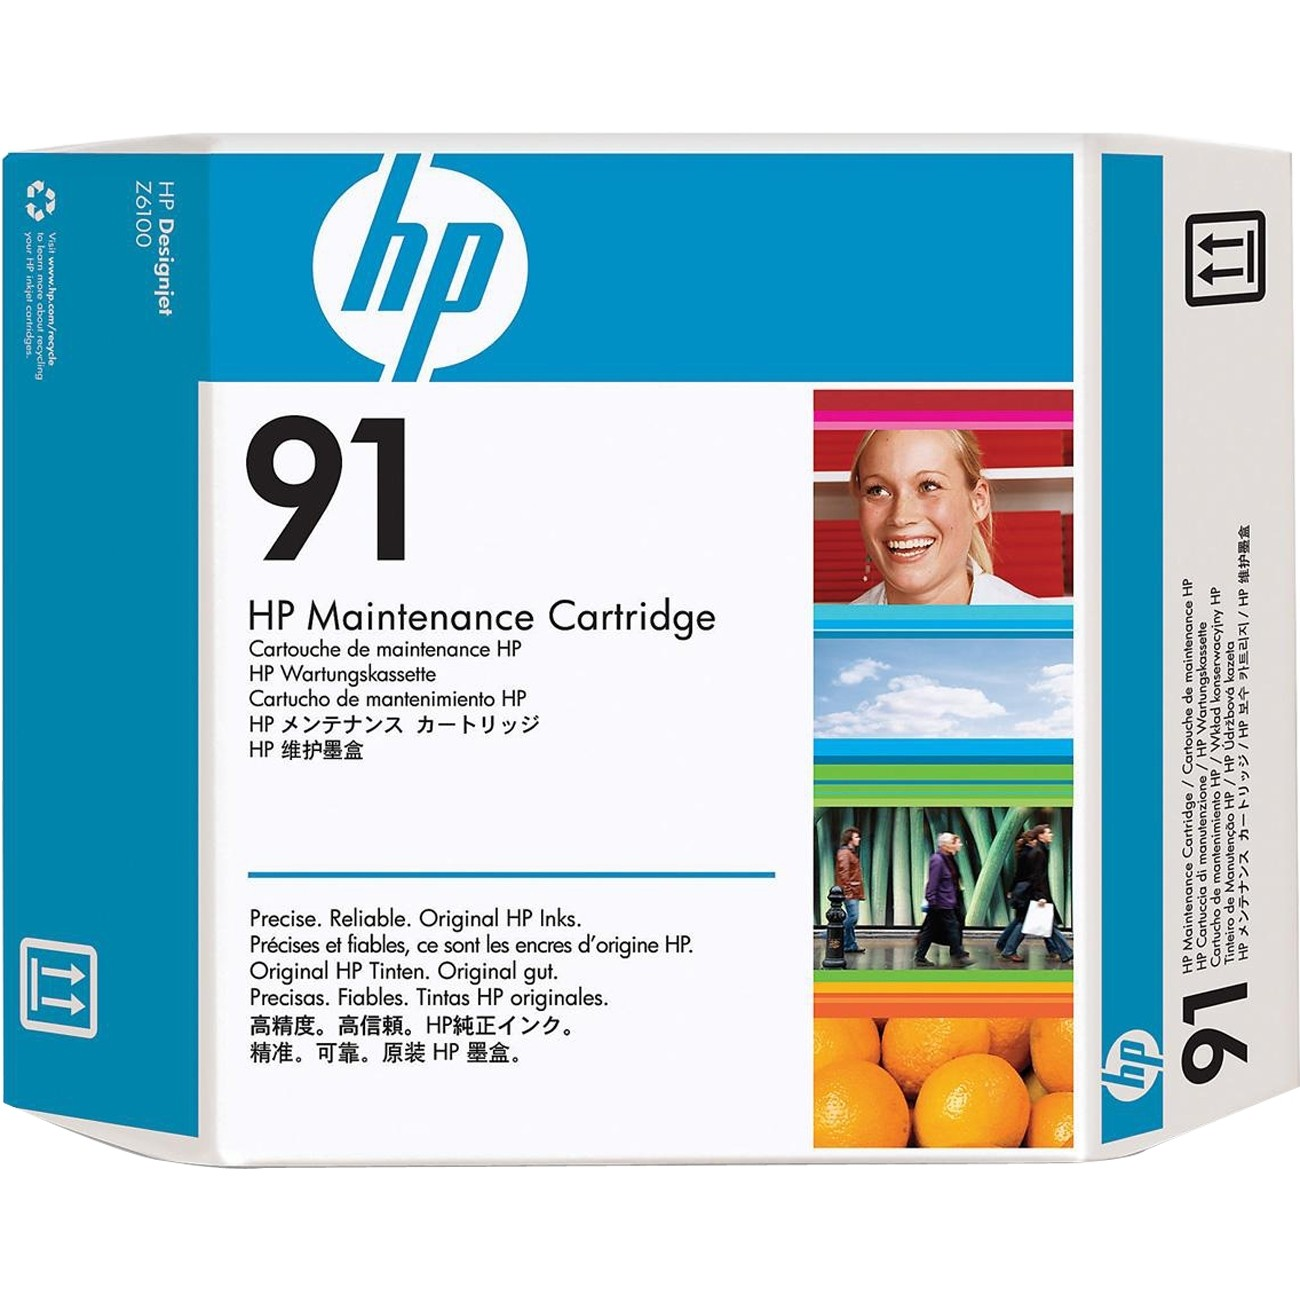 HP 91 Printhead Maintenance Cartridge C9518A